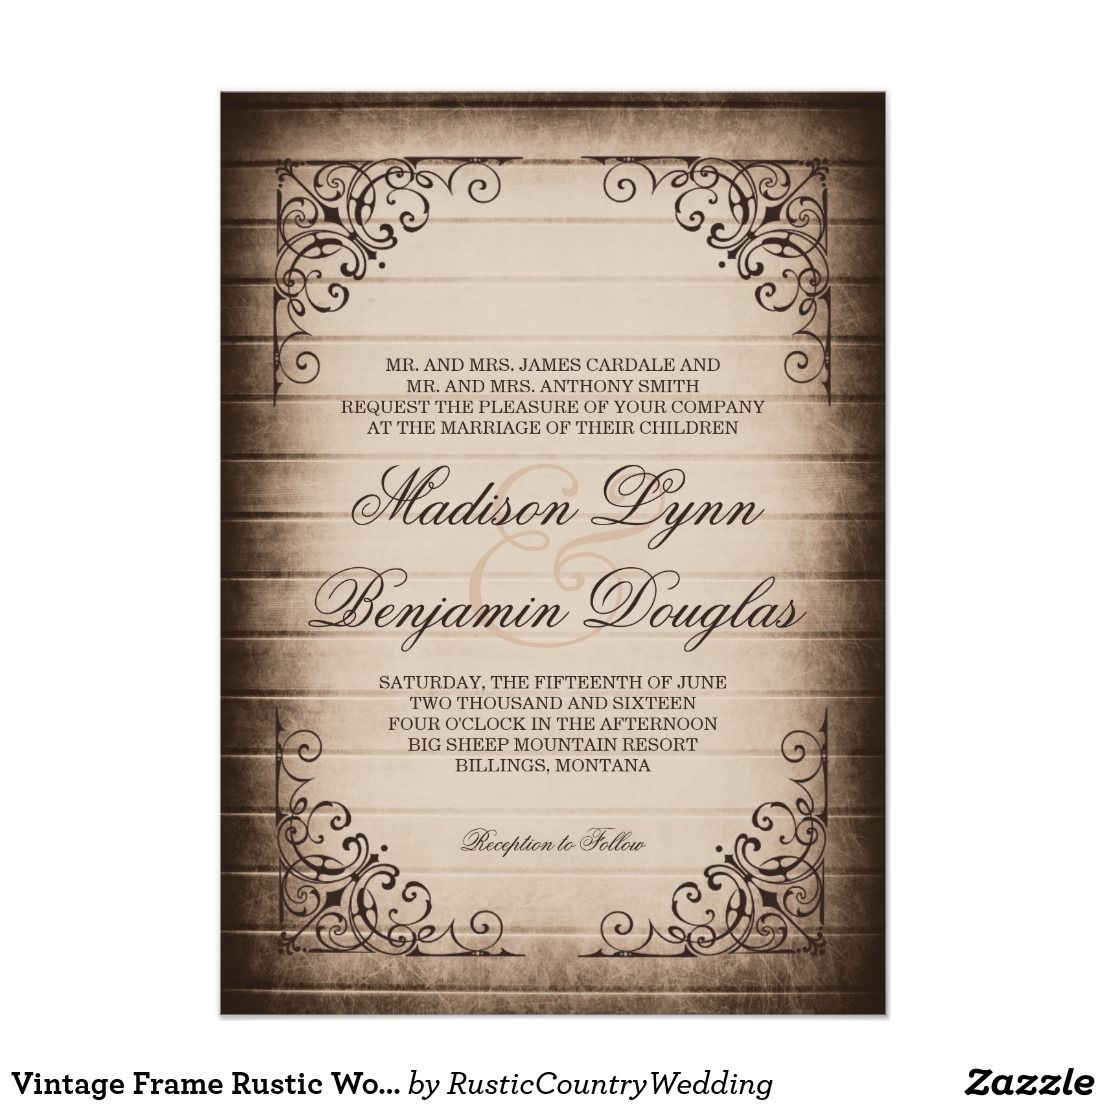 Vintage Frame Rustic Wood Wedding Invitations | Wedding & Bridal ...